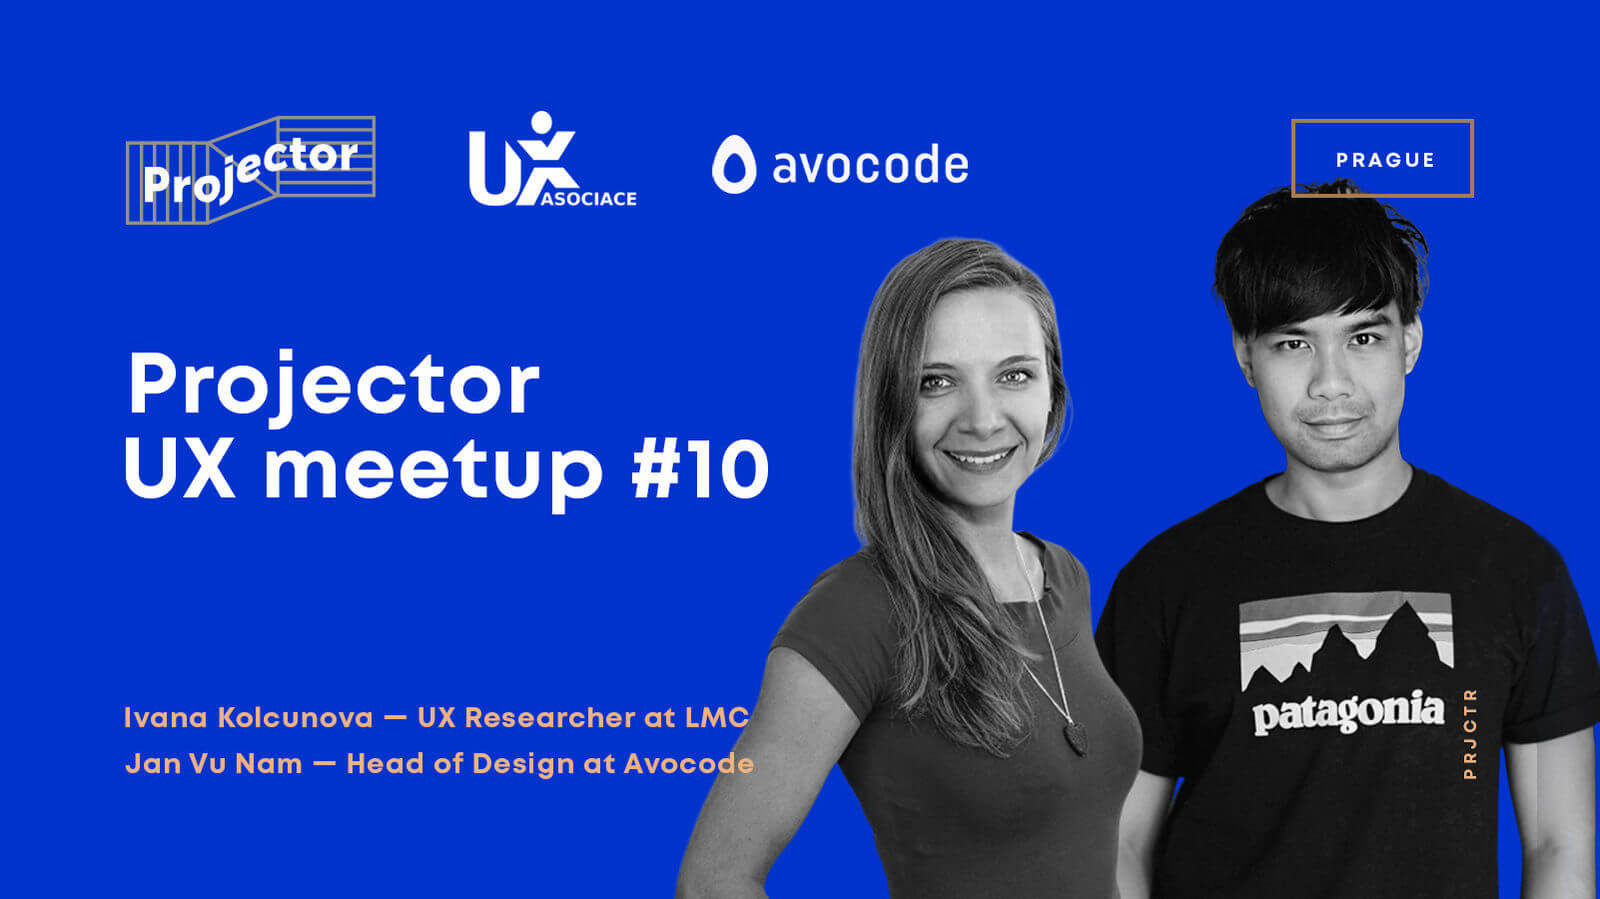 Projector UX meetup #10